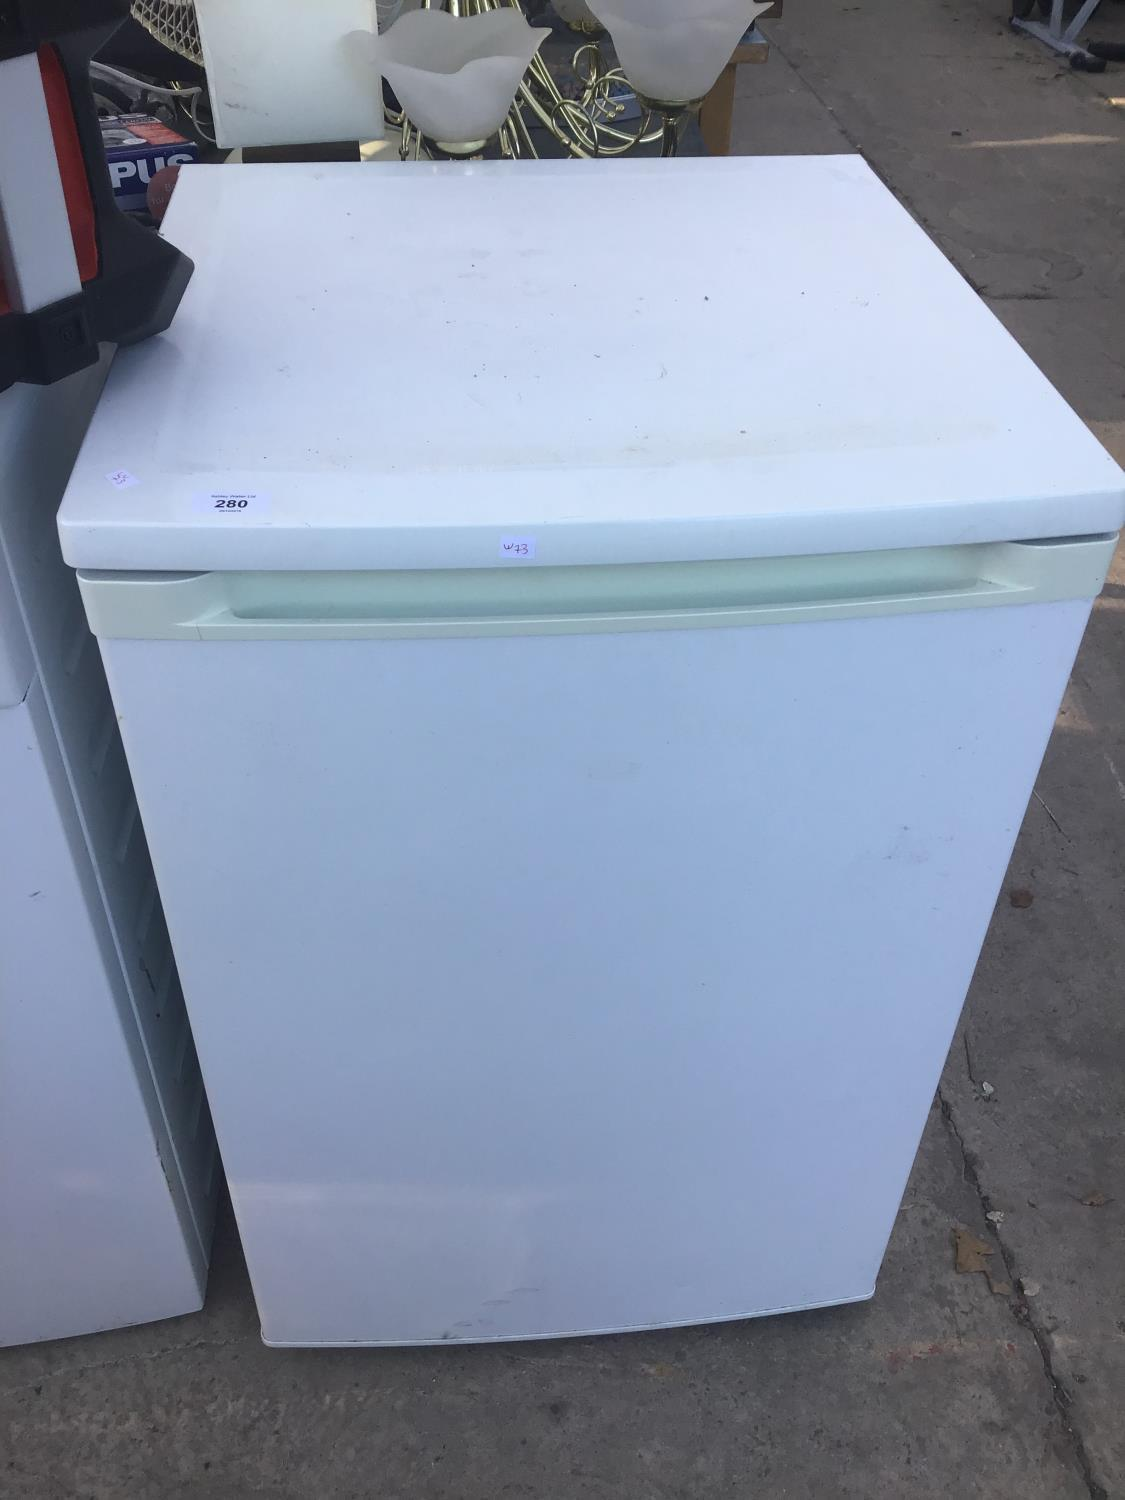 Lot 280 - A CURRY UNDER COUNTER FRIDGE IN WORKING ORDER